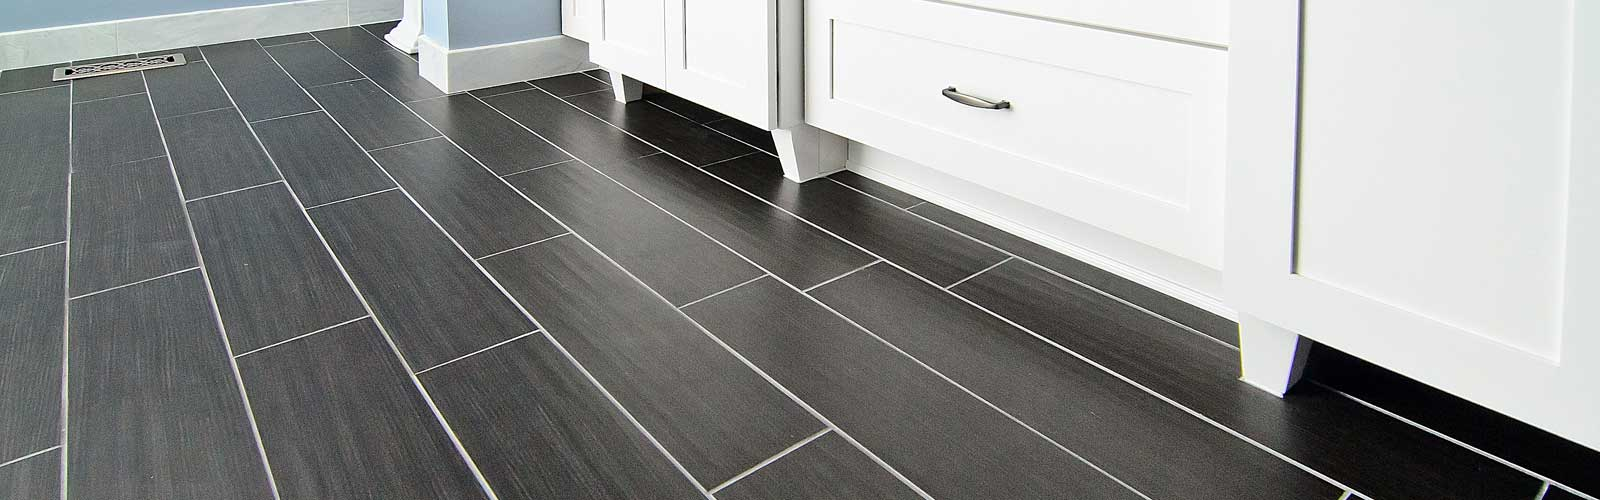 Chicago Flooring Services Chicago Tile Company Best